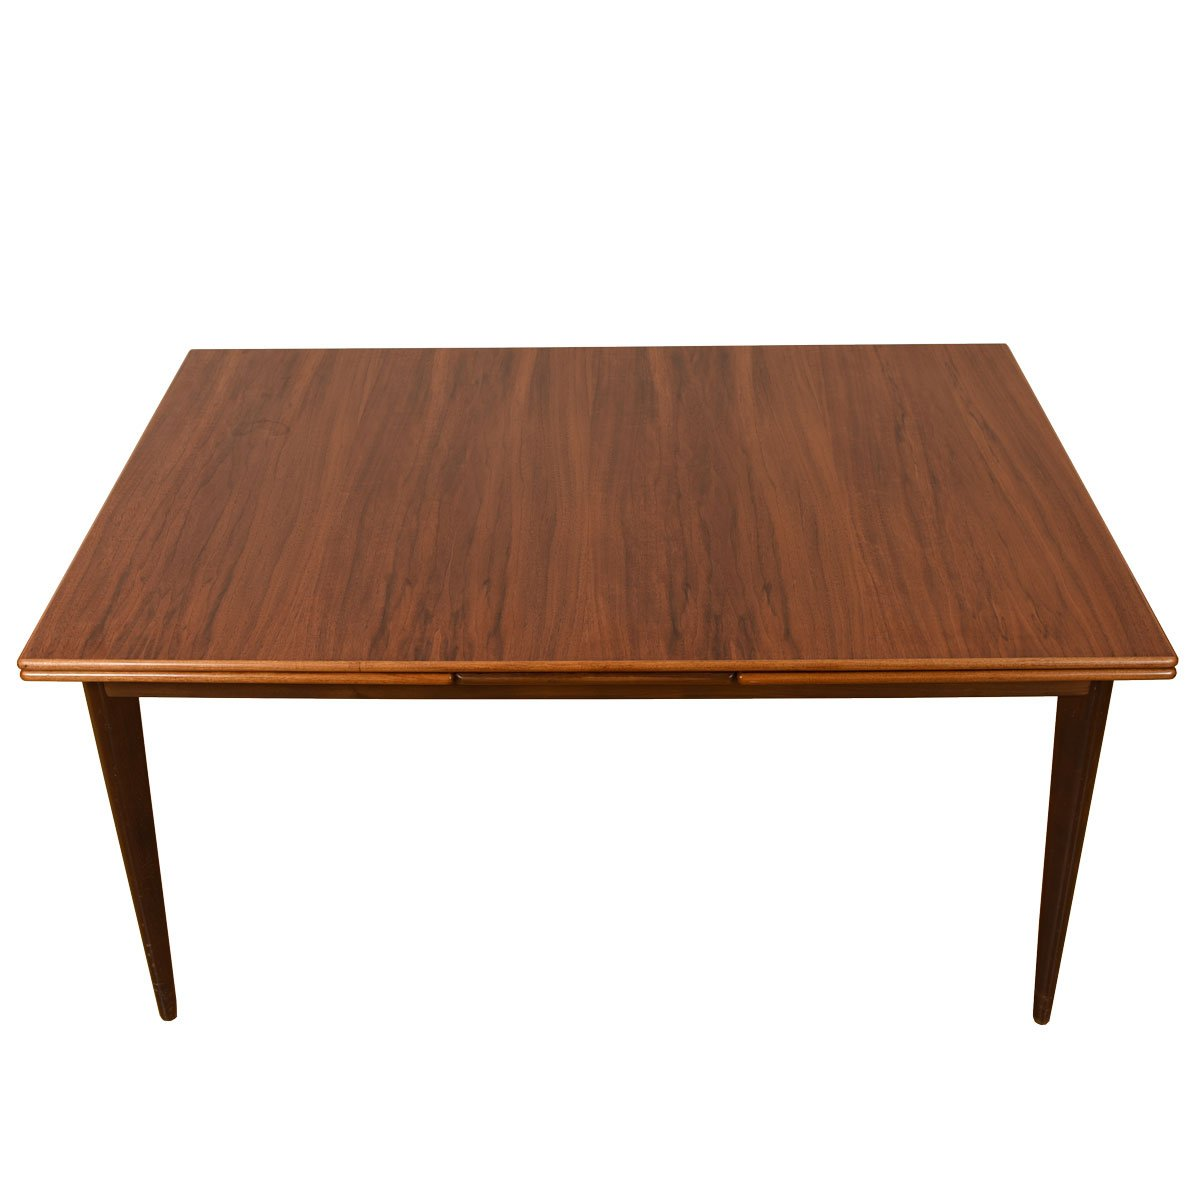 Swedish Modernist Expanding Walnut Dining Table by Dux